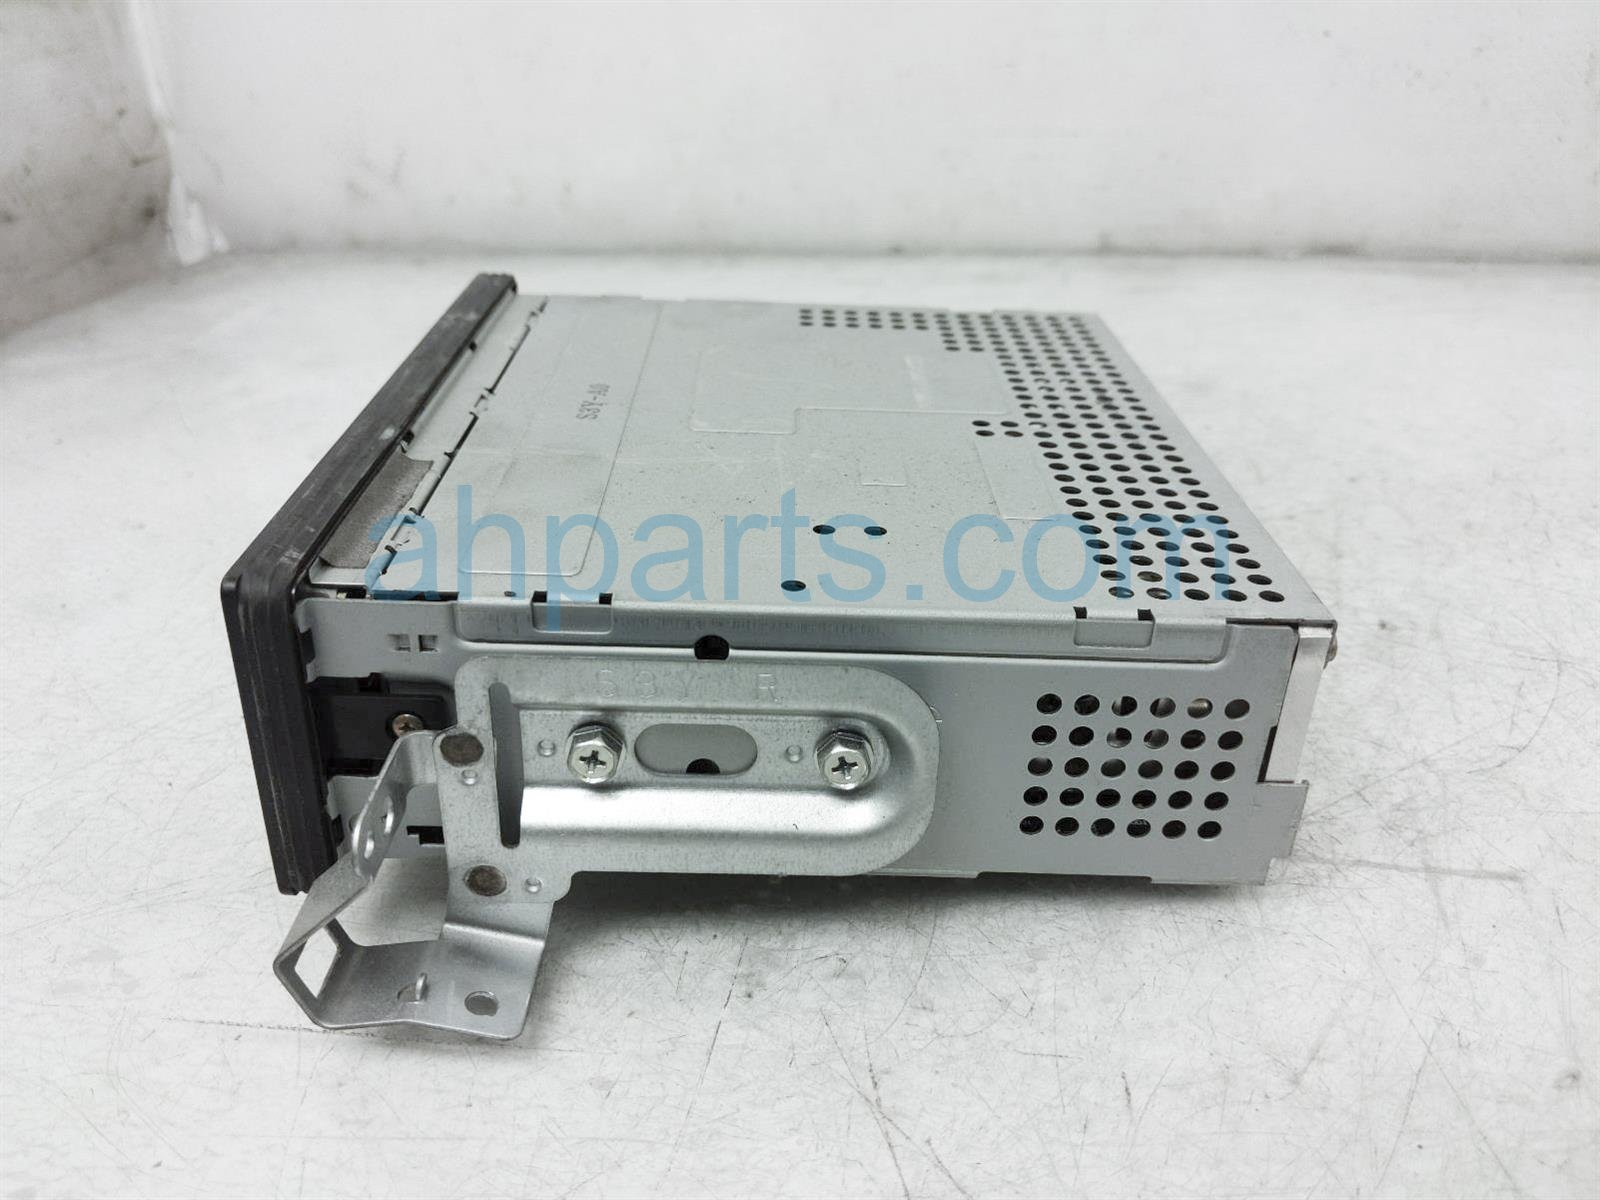 2003 Honda Insight Am/fm/cd Radio 39100 S3Y A01 Replacement